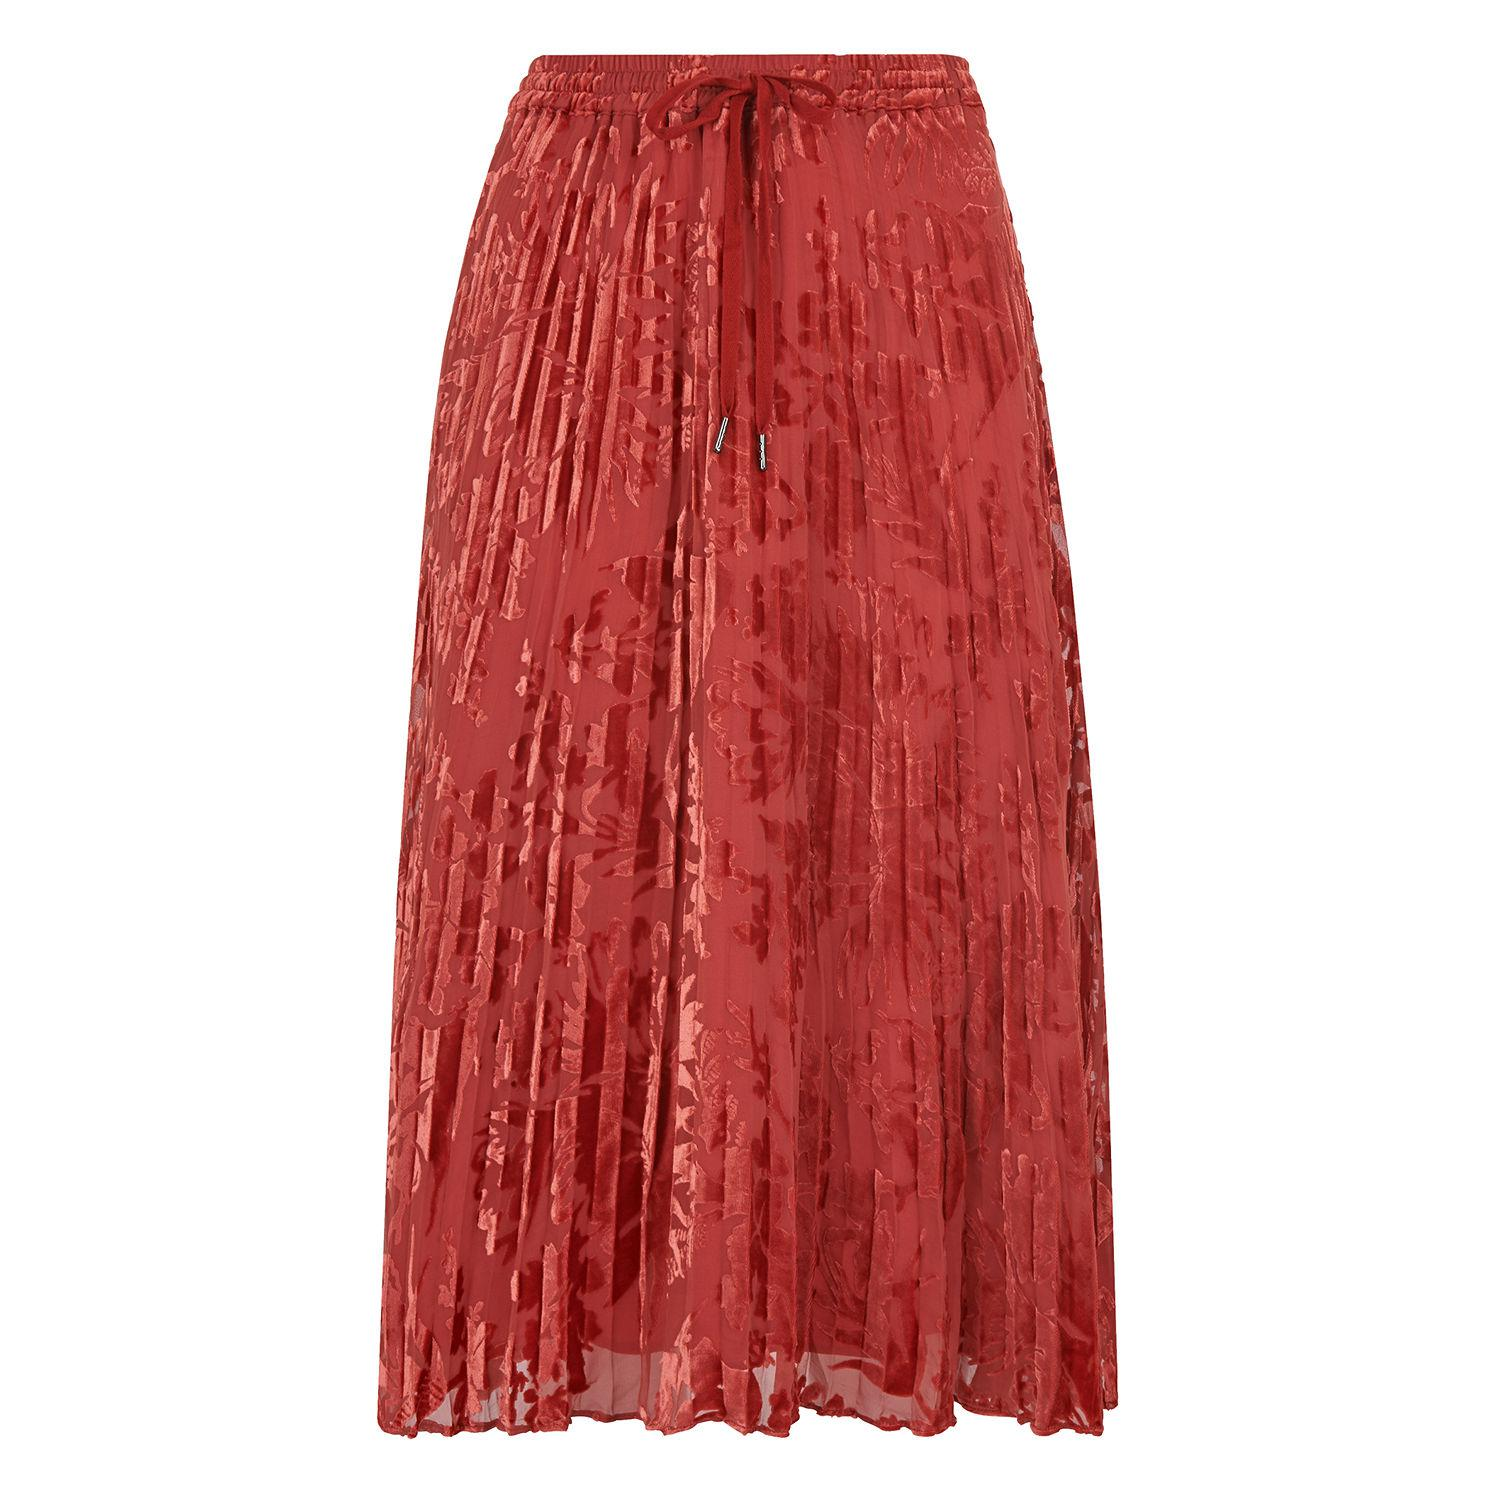 2cd3c6e85b Lyst - Whistles Harlow Pleated Devore Skirt in Orange - Save 92%